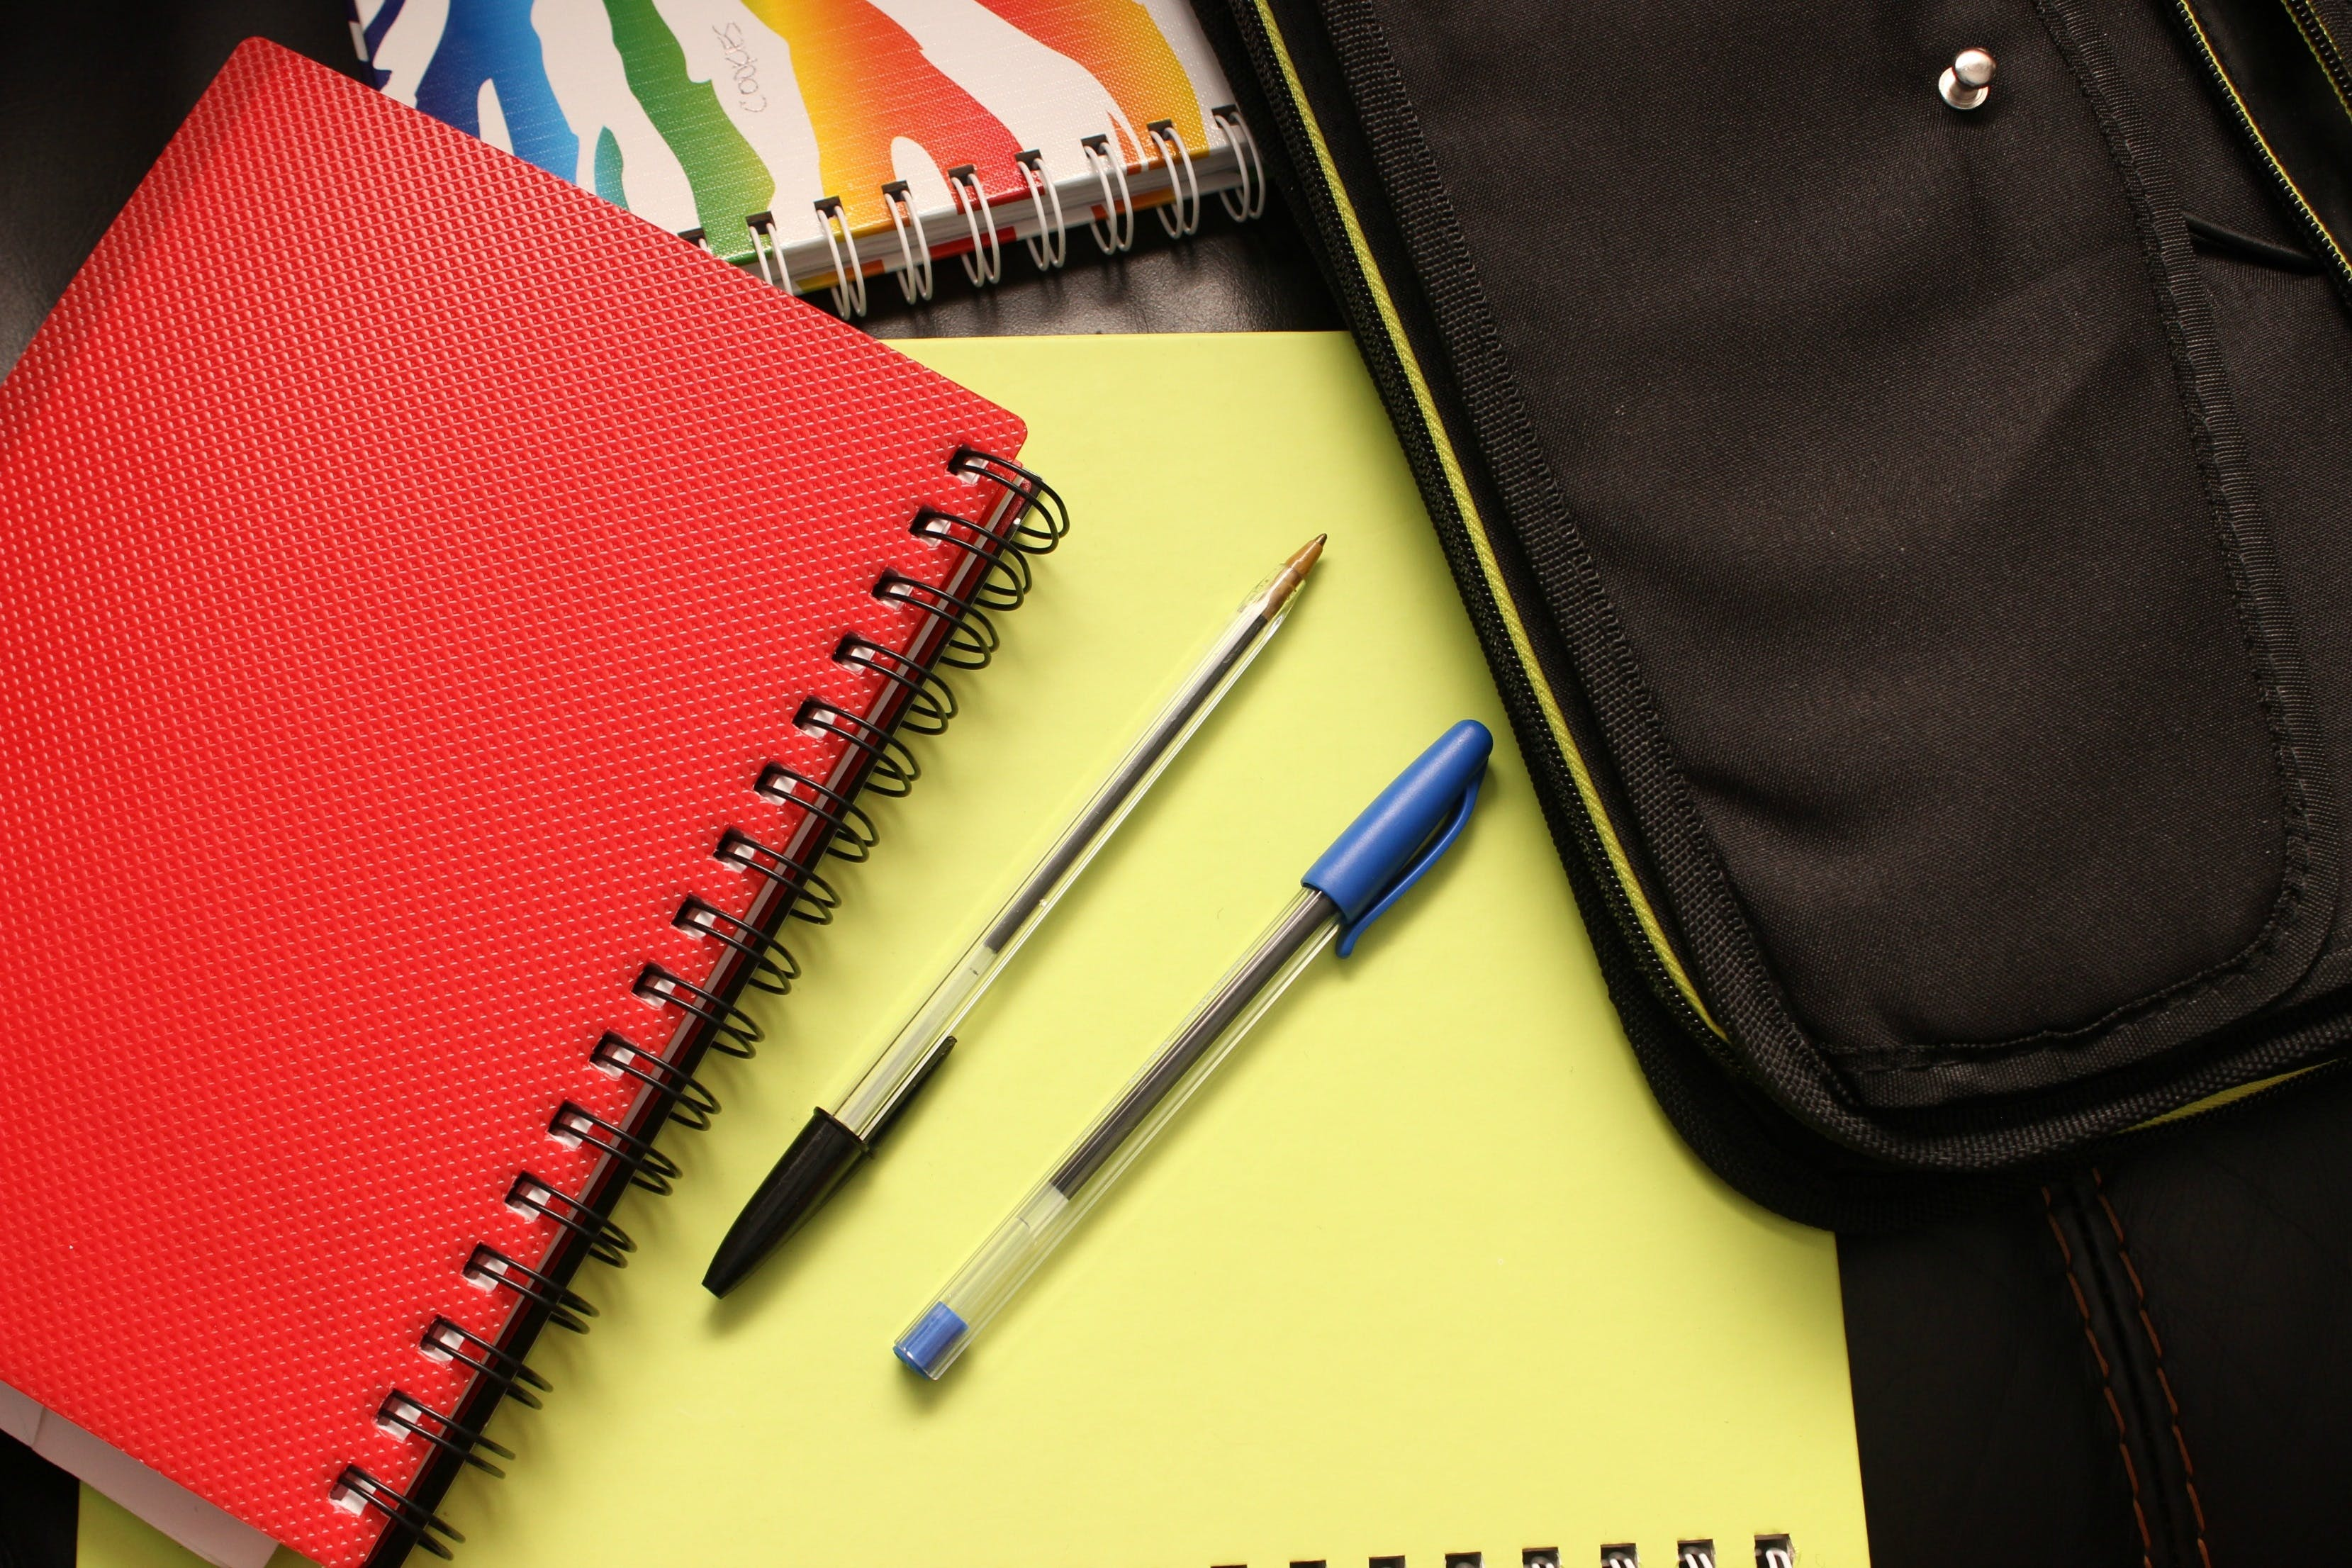 Black and Blue Pens Beside Red Covered Notebook